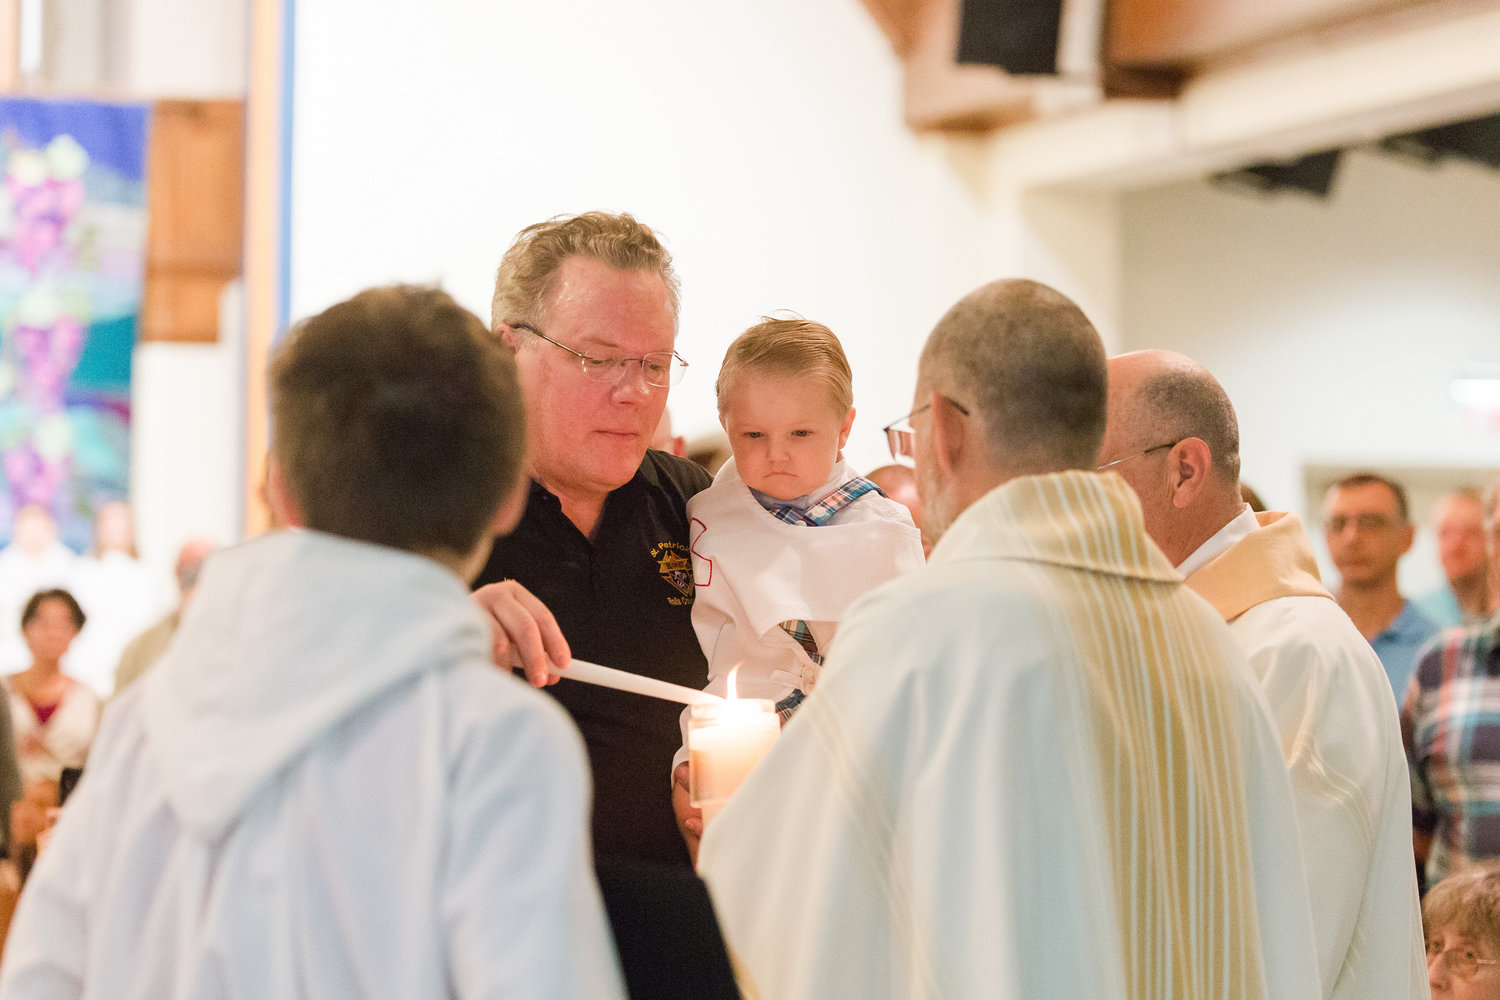 Joe Dalton, Noah's godfather, lights his baptismal candle from the Easter candle at St. Patrick Church in Rolla.